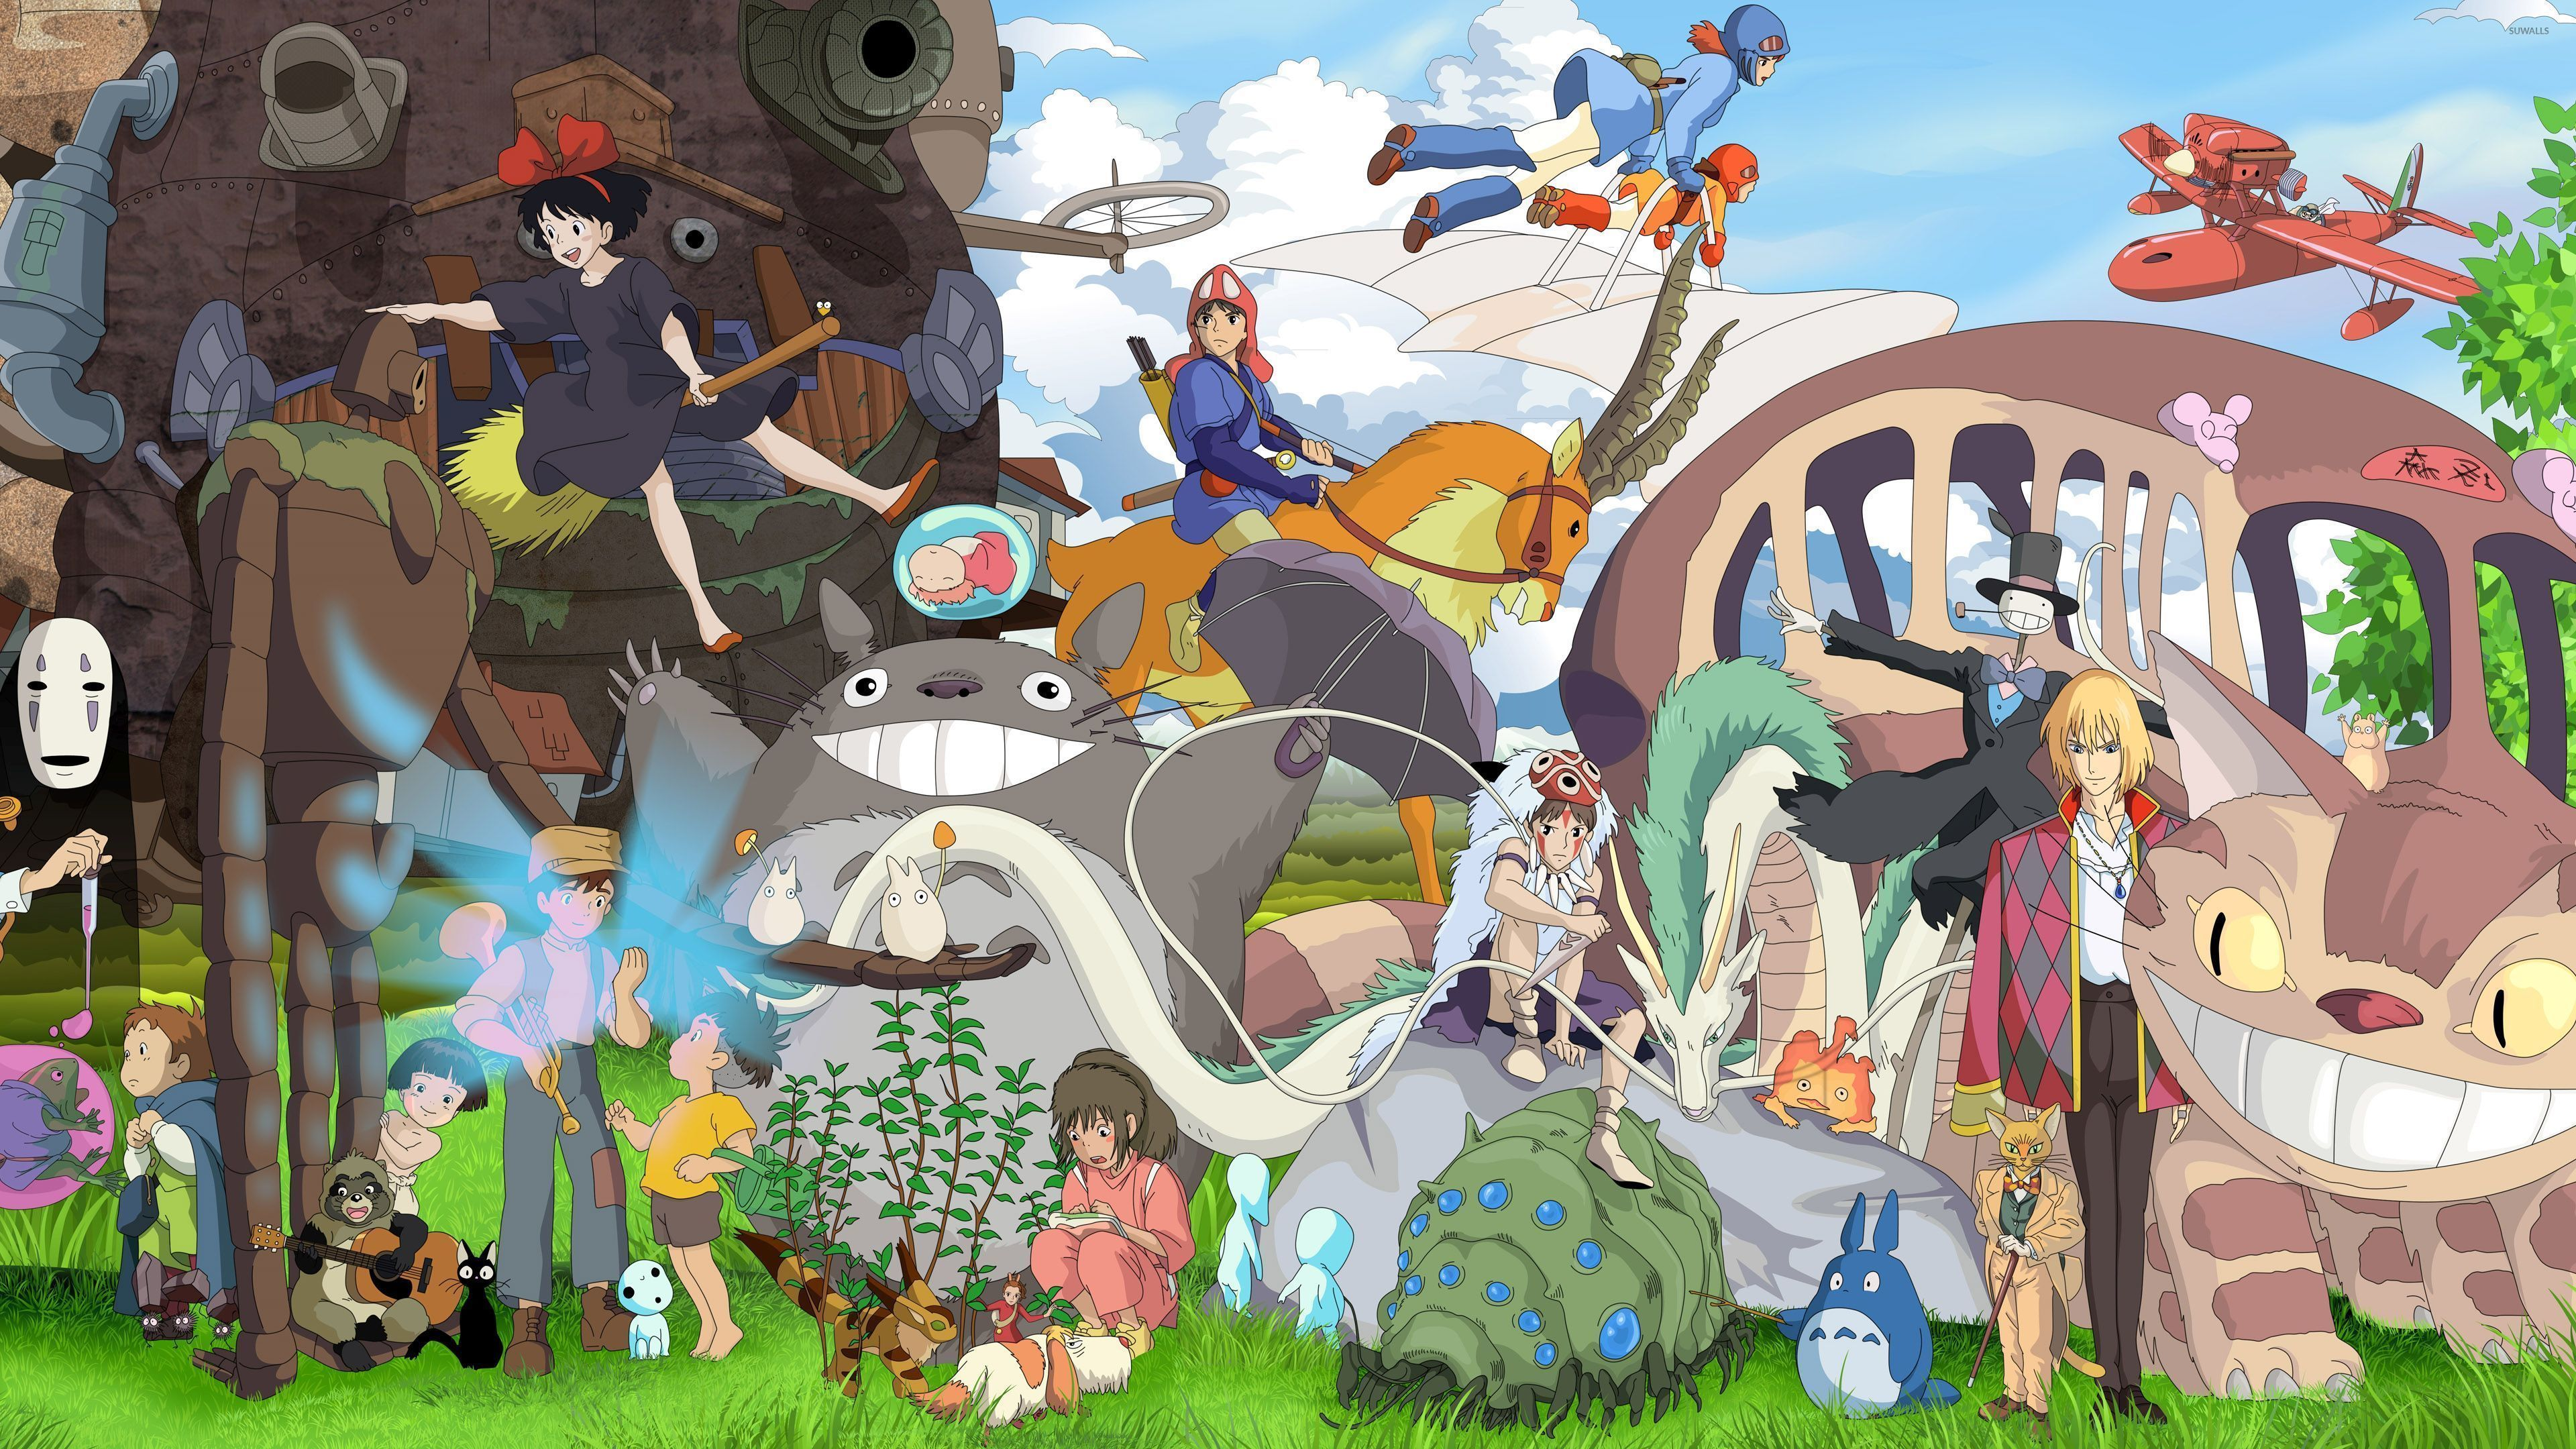 Studio Ghibli Desktop Wallpapers Top Free Studio Ghibli Desktop Backgrounds Wallpaperaccess Studio Ghibli Characters Studio Ghibli Movies Ghibli Movies